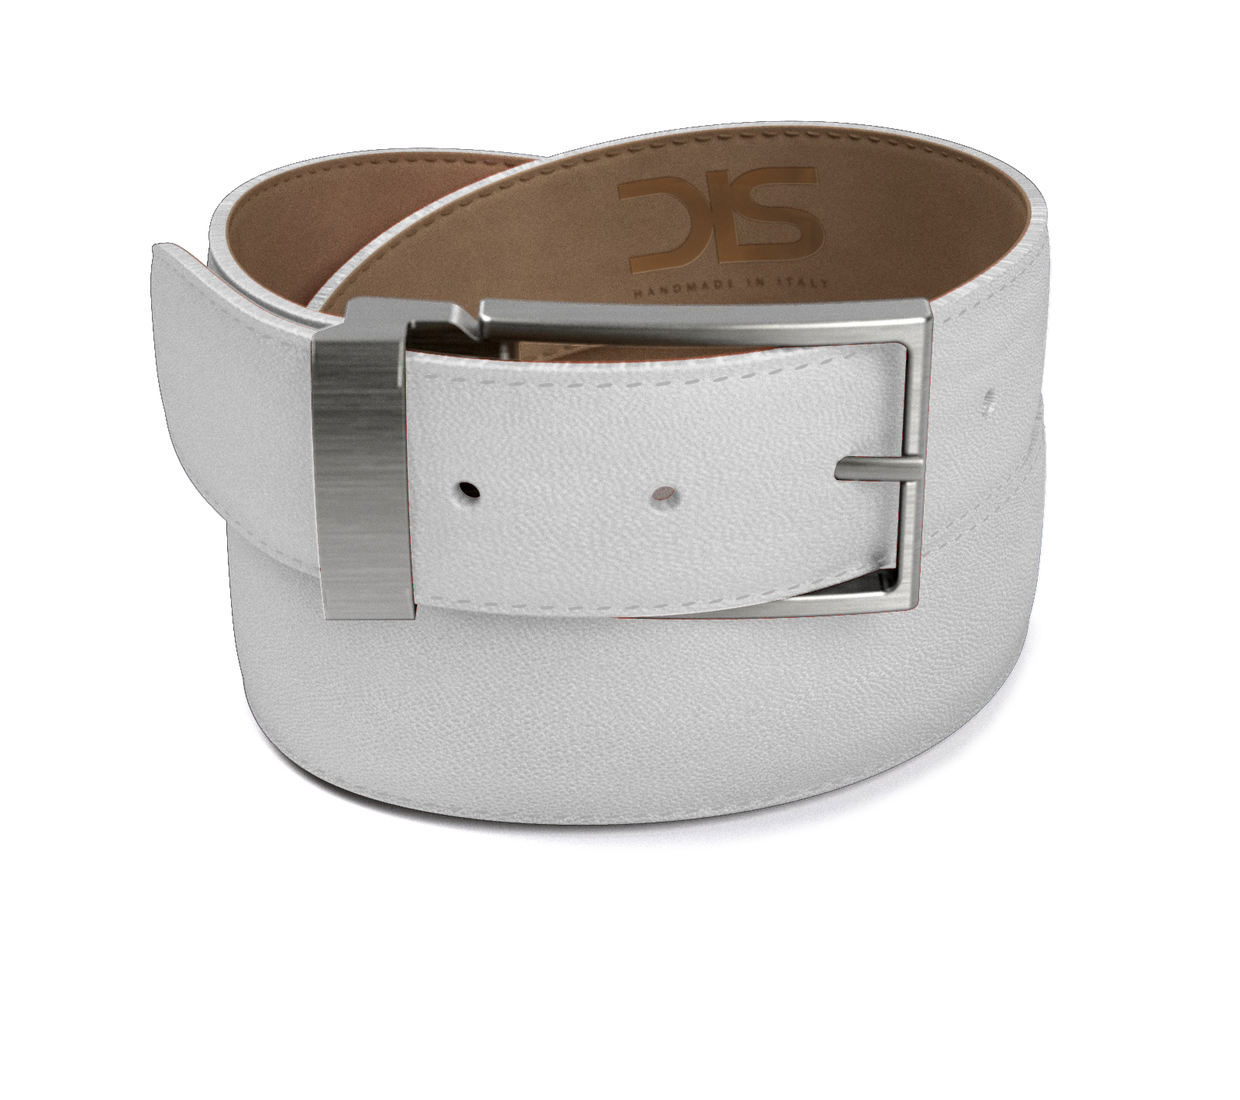 White grain leather belt with opaque buckle